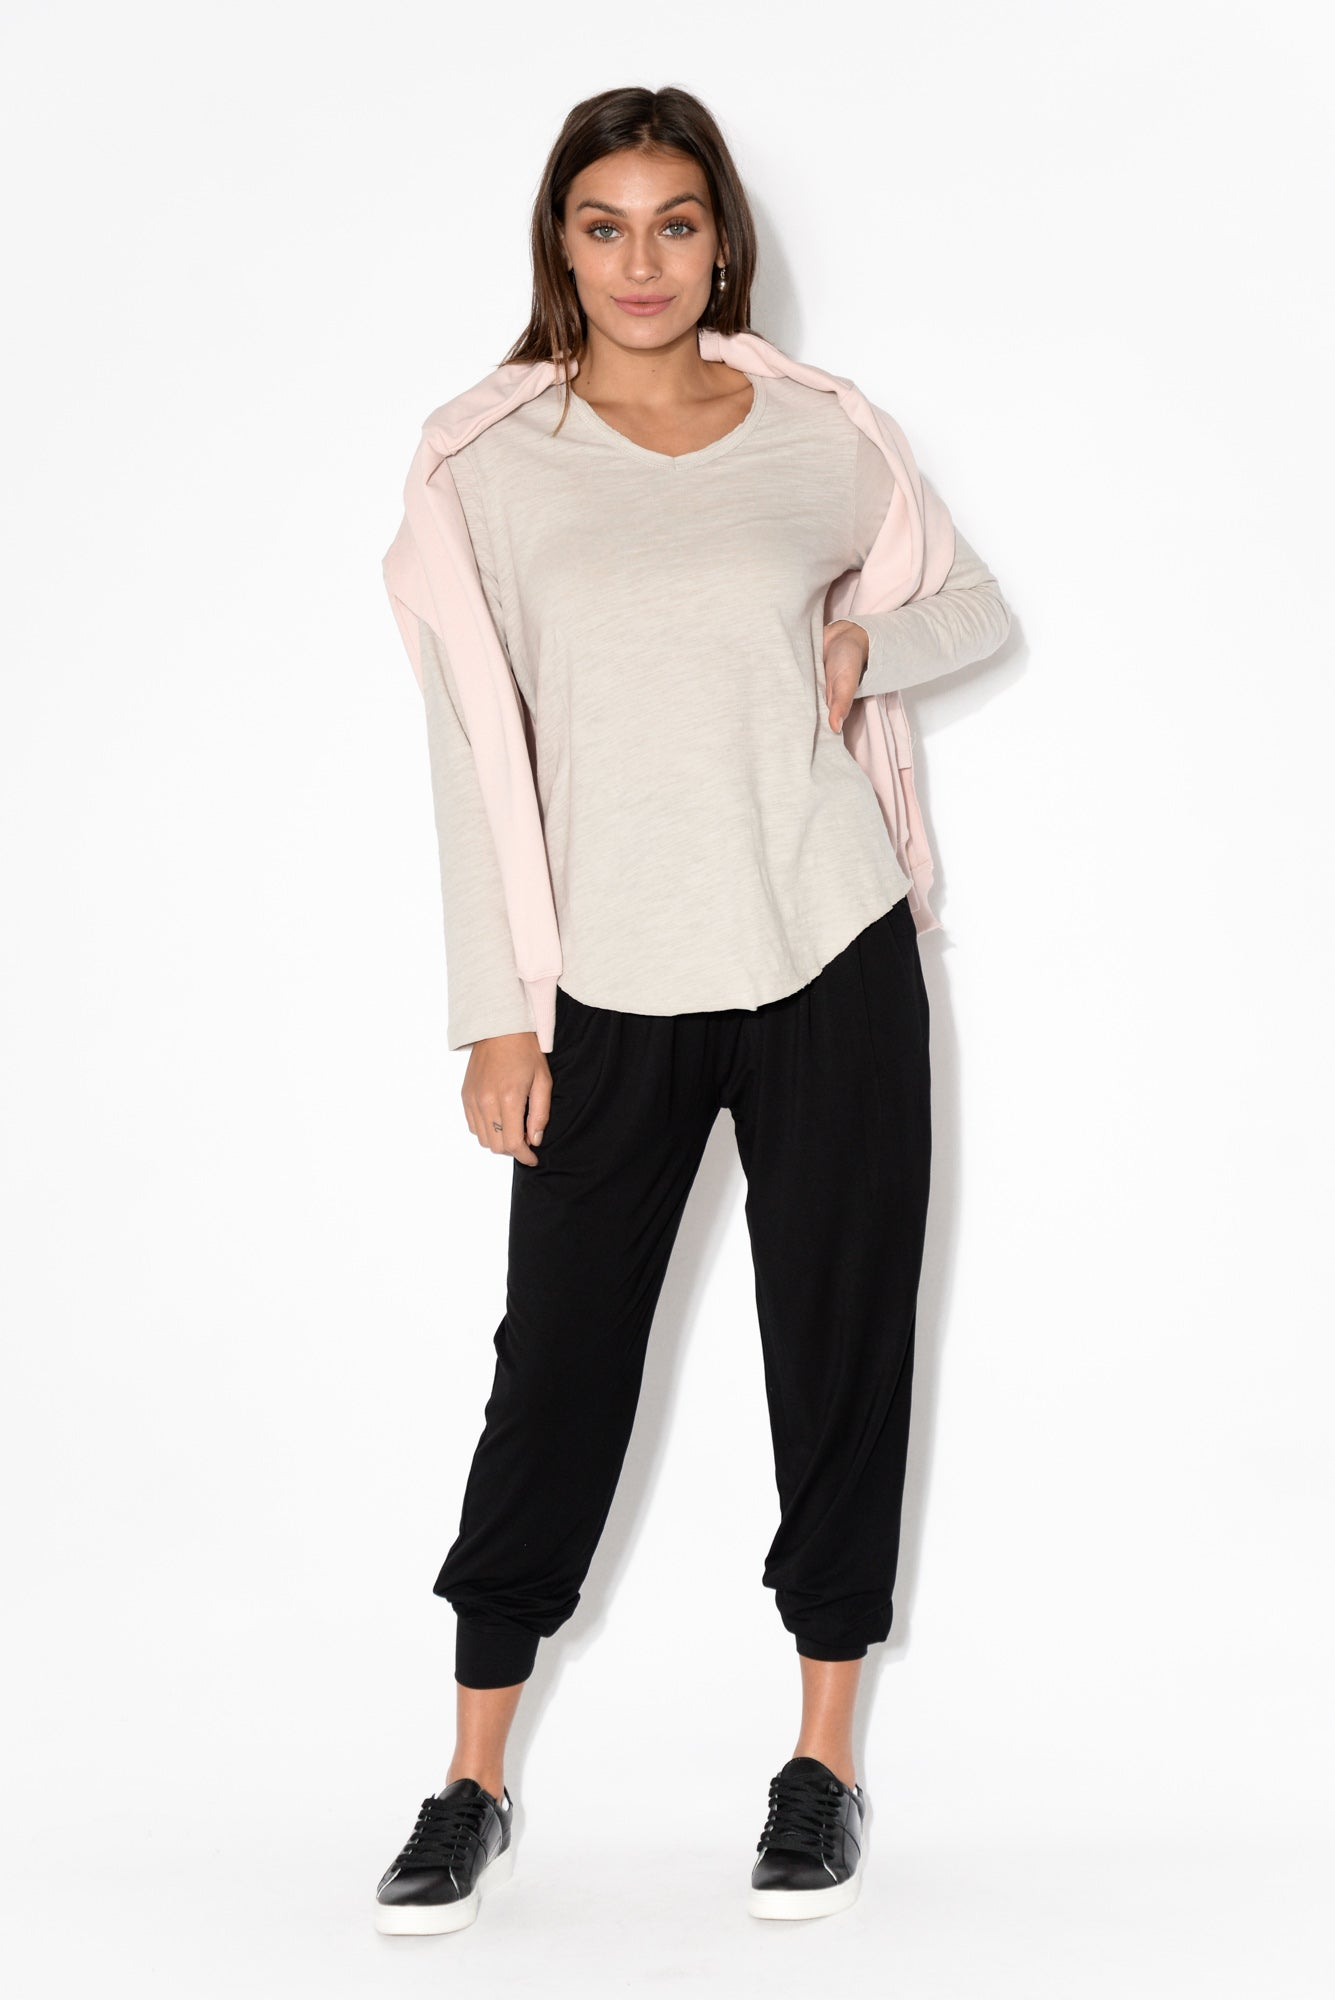 Portsea Stone Cotton Long Sleeve Top